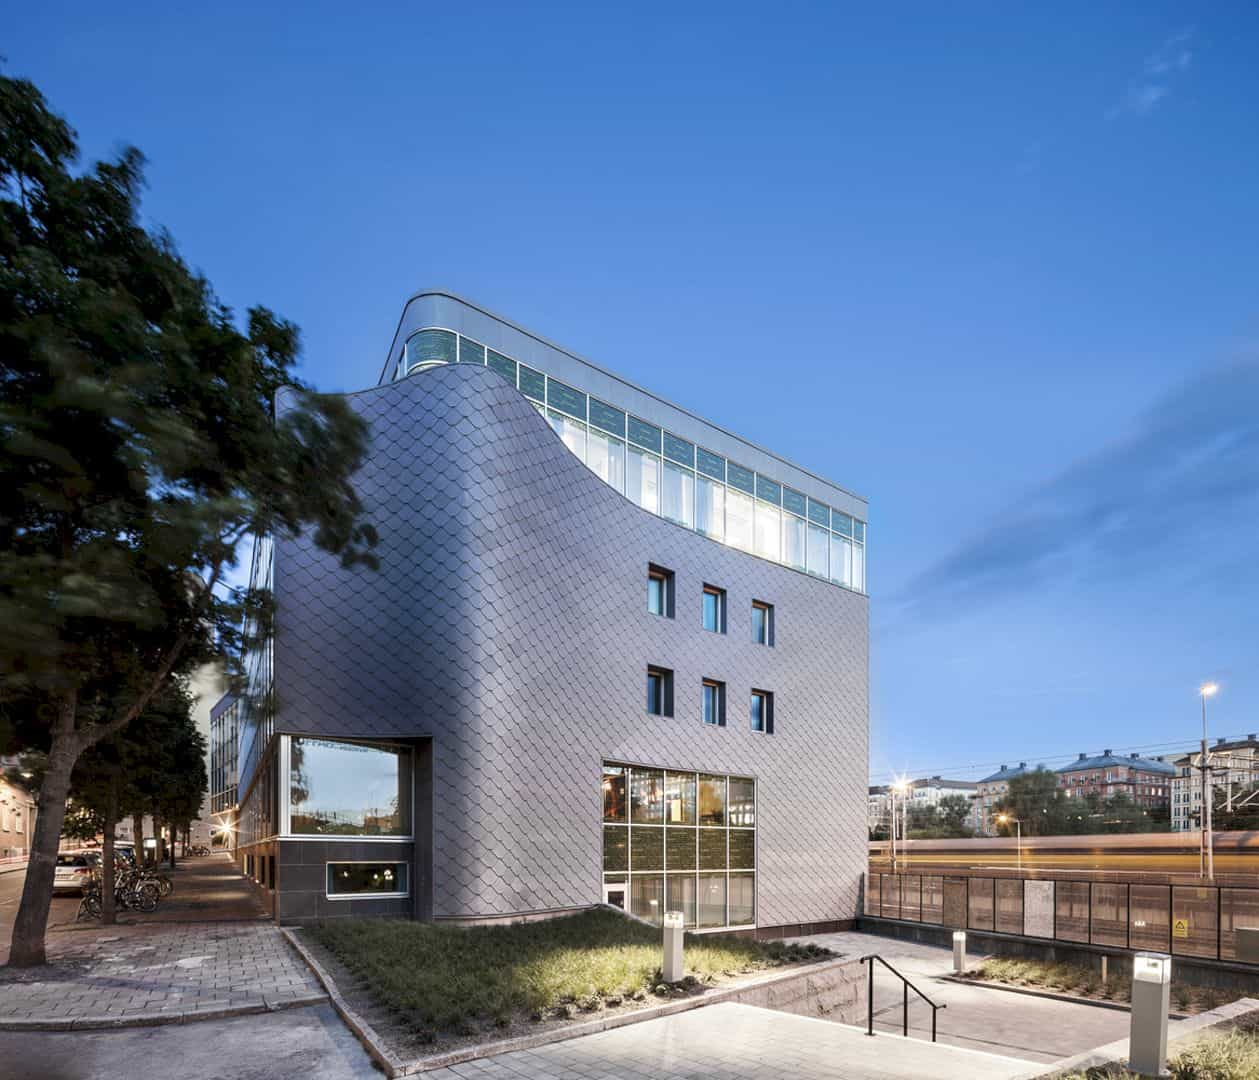 The Building Is Designed With The Modern Design To Get A Good Balance With  The High Profile Building Around It. It Is Renovated And Also Offering  Flexible ...